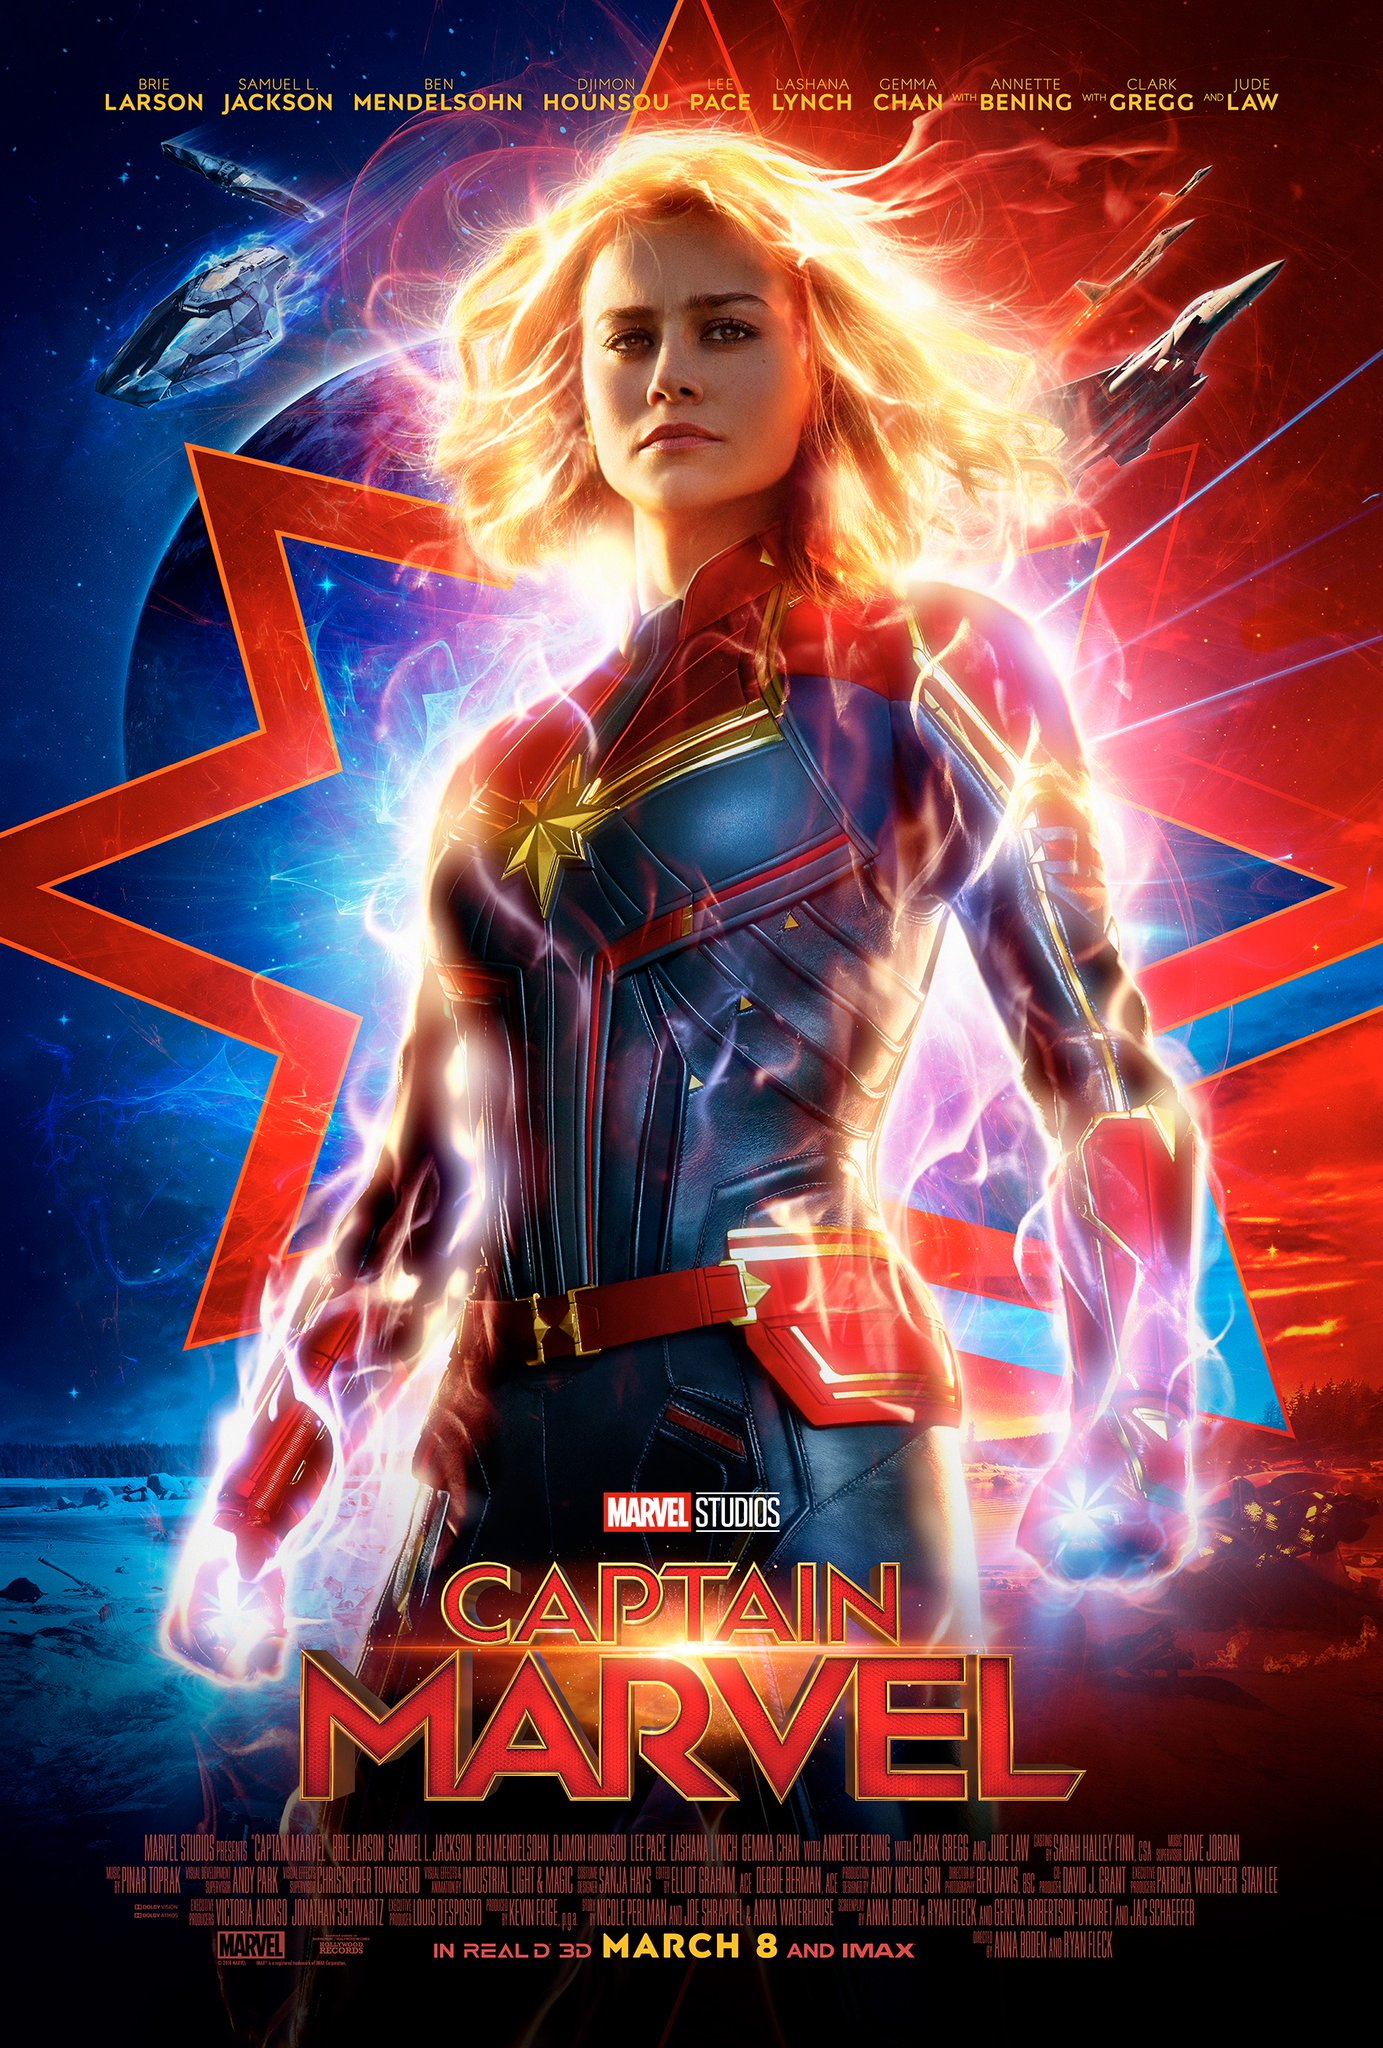 #captainmarvel